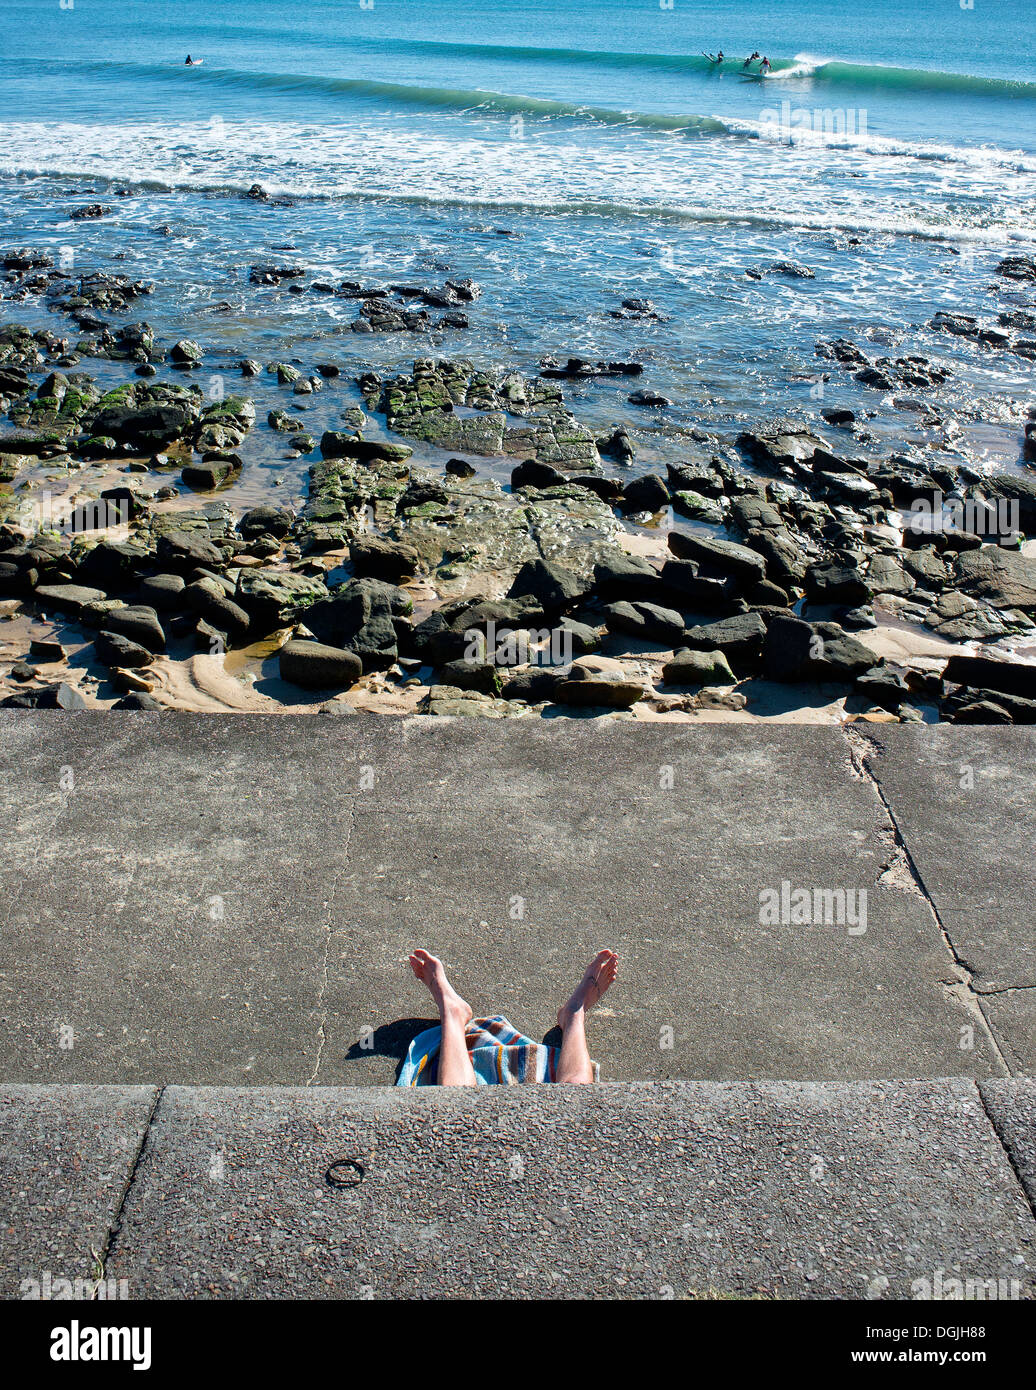 The legs of a sunbather at Alexandra Headland in Queensland. Stock Photo